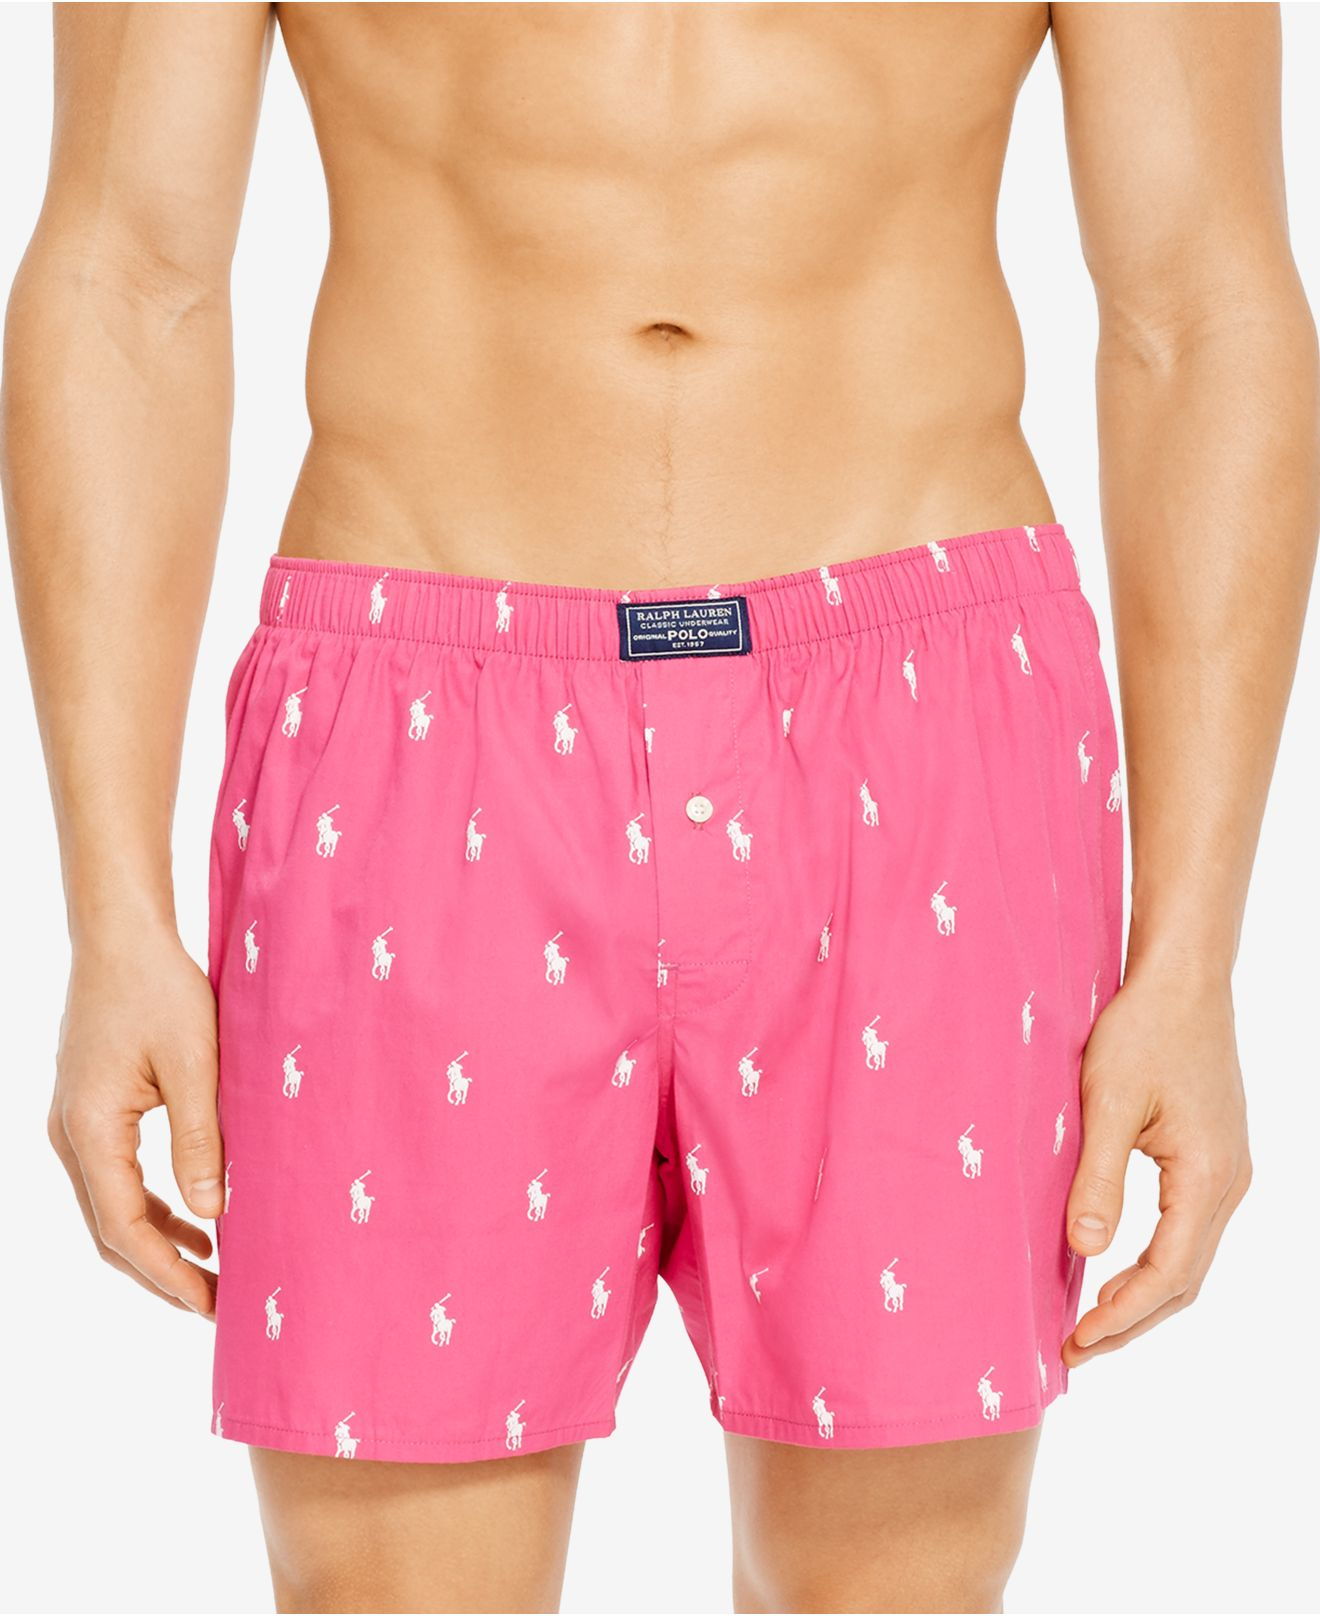 Buy low price, high quality pink boxers mens with worldwide shipping on missionpan.gq